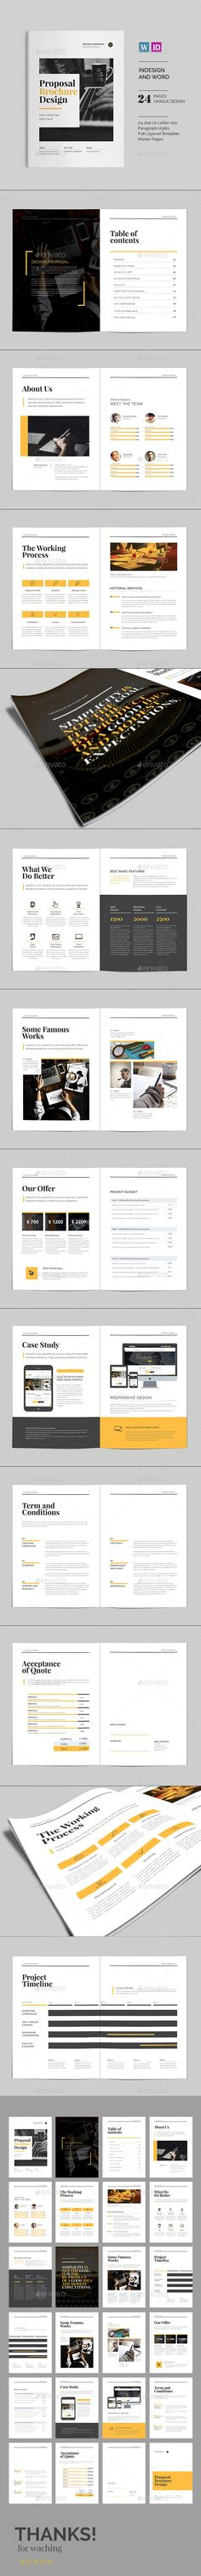 Commercial Proposal Format Impressive The Business Proposal Template  Business Proposal Template .